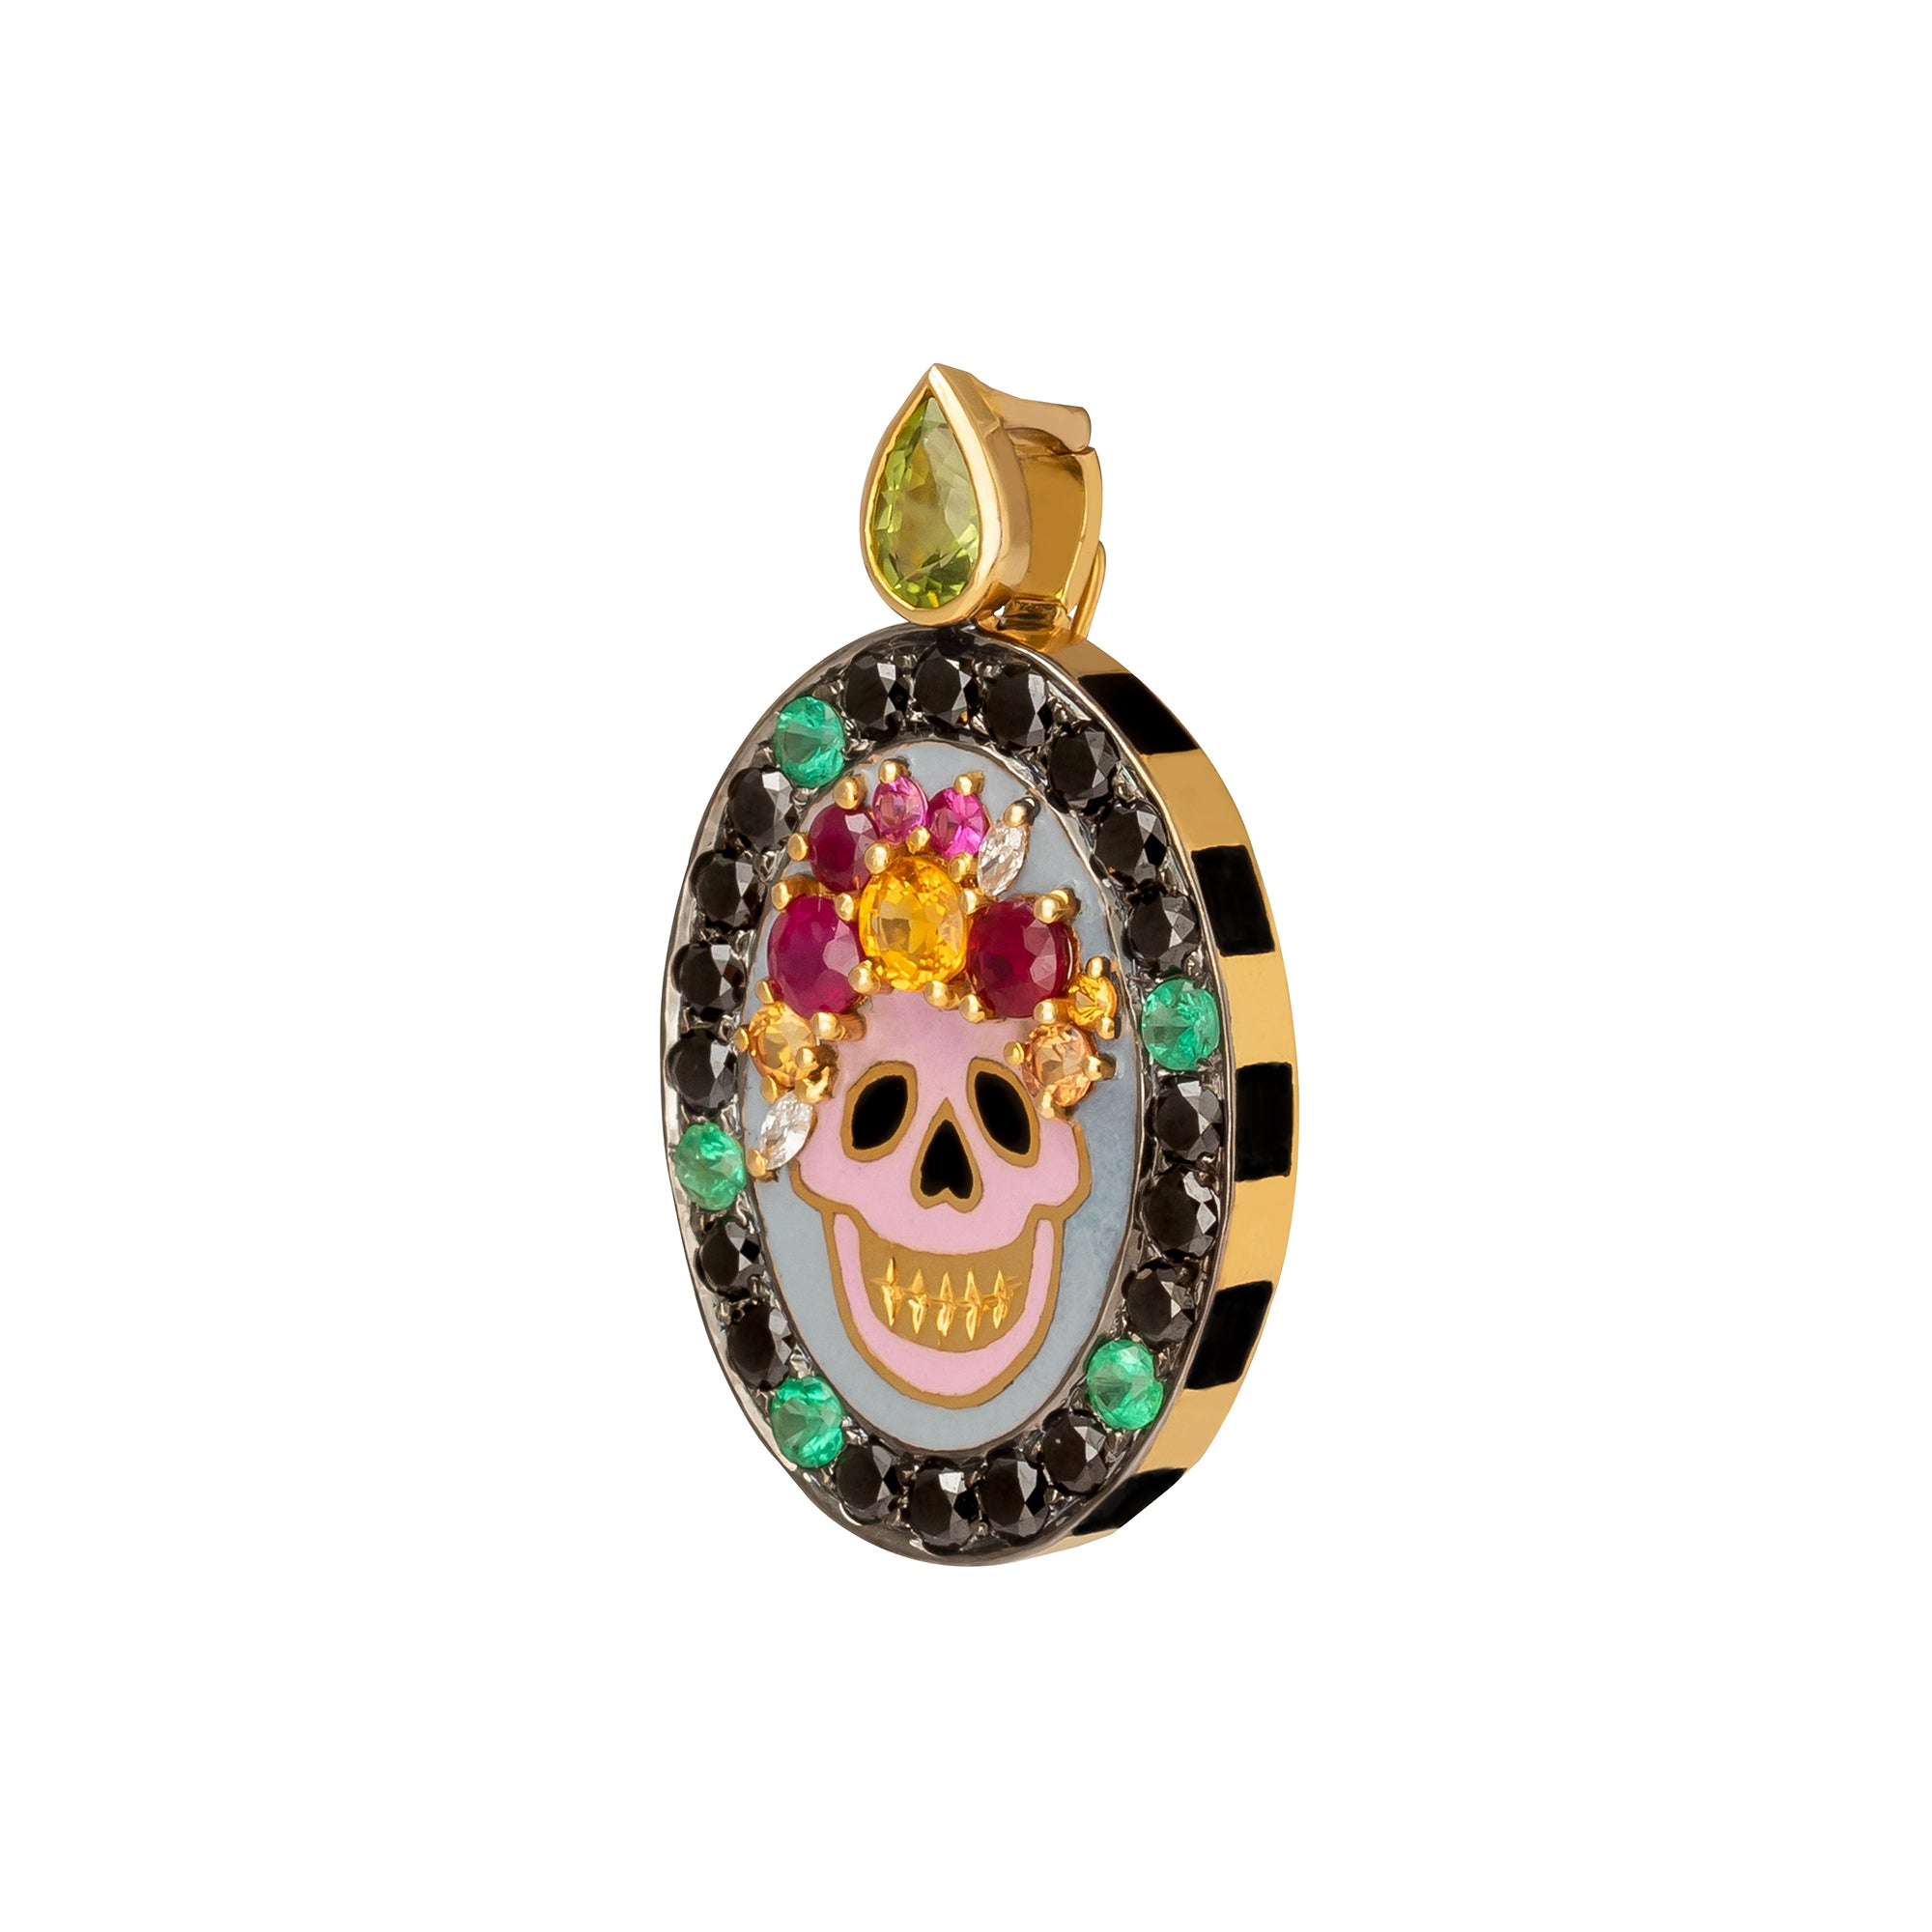 Skull Enamel Large Pendant - Holly Dyment - Charms & Pendants | Broken English Jewelry